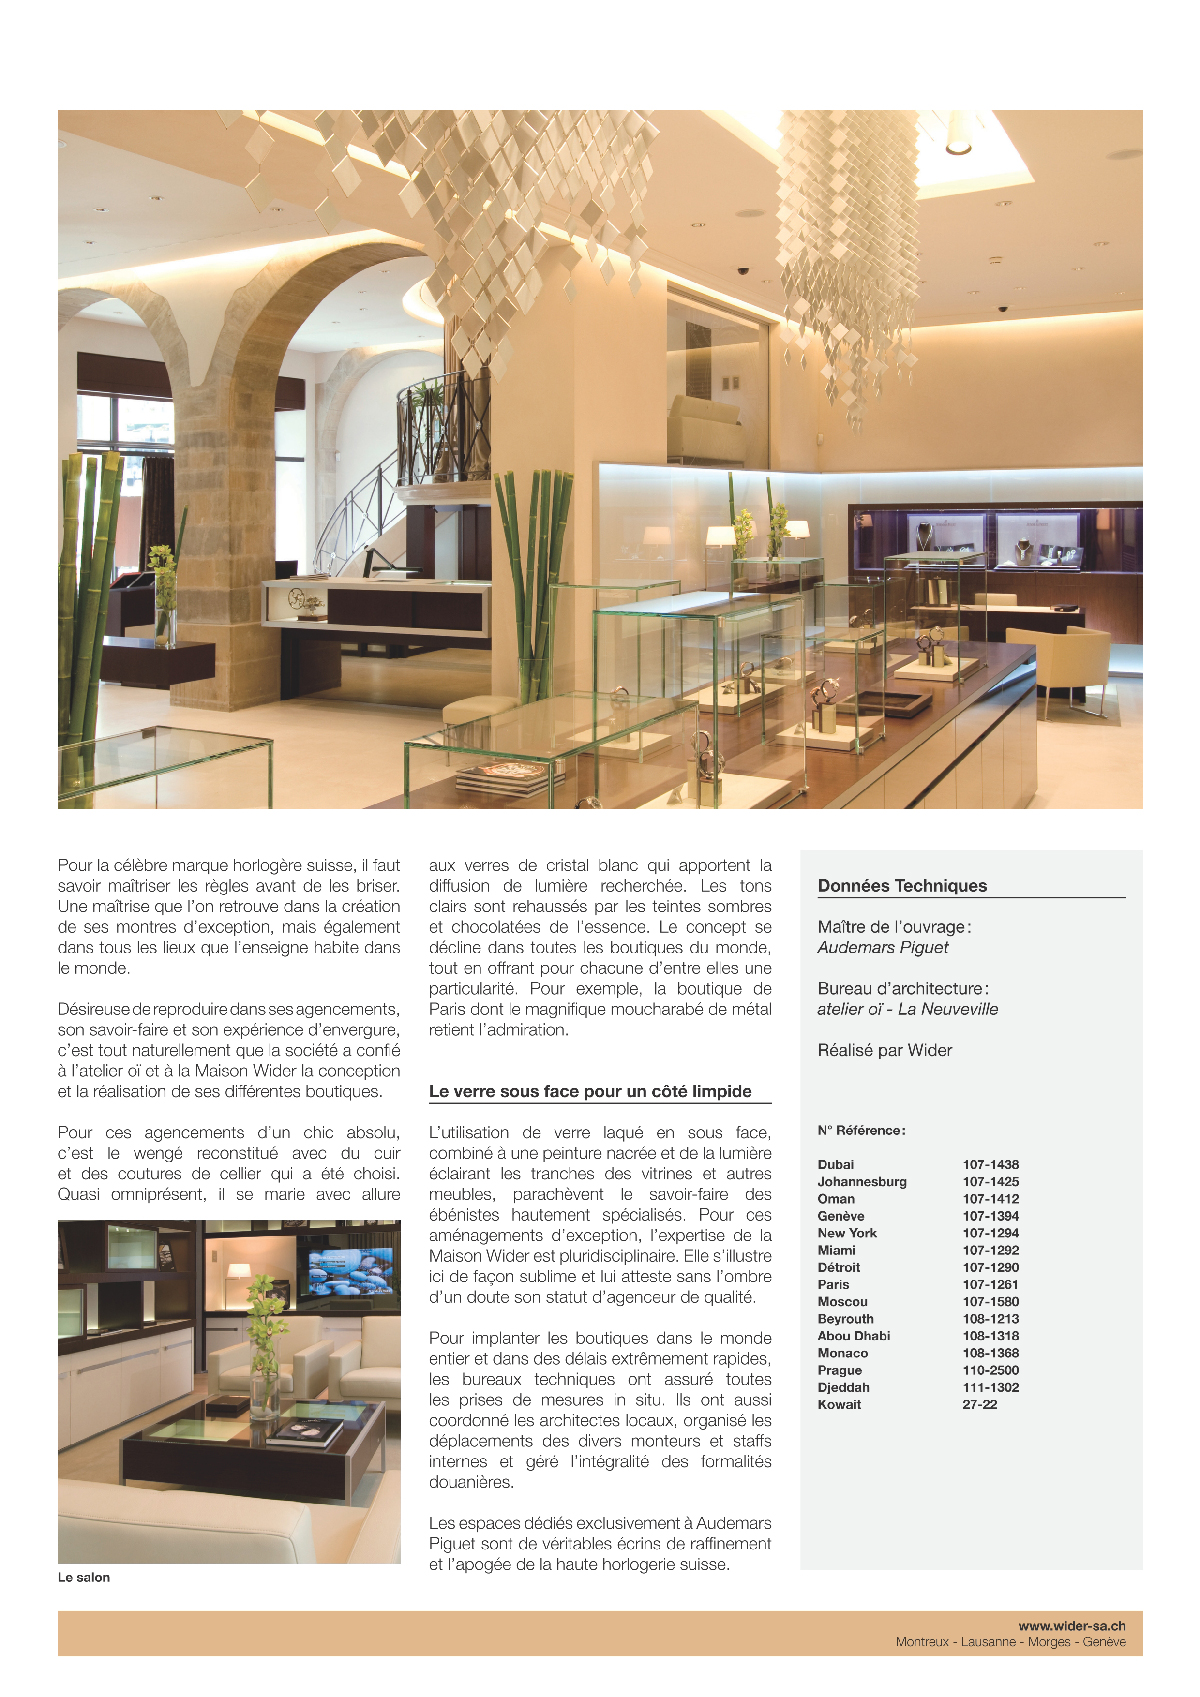 Wider Sa Luxury Boutiques